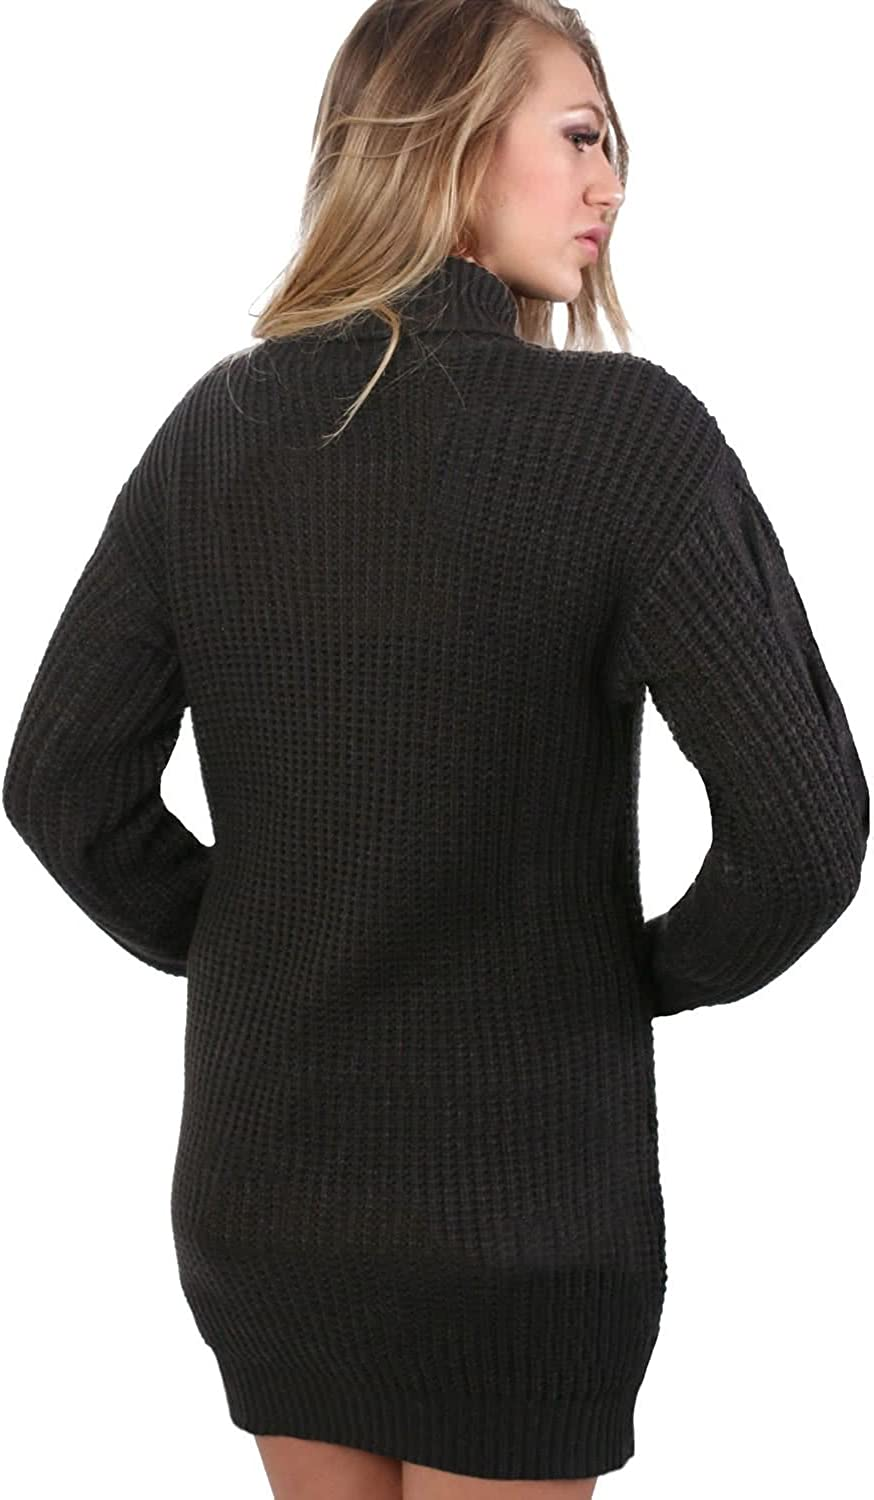 Pilot Womens Cable Knit Long Sleeve/ Roll Neck Sweater Dress